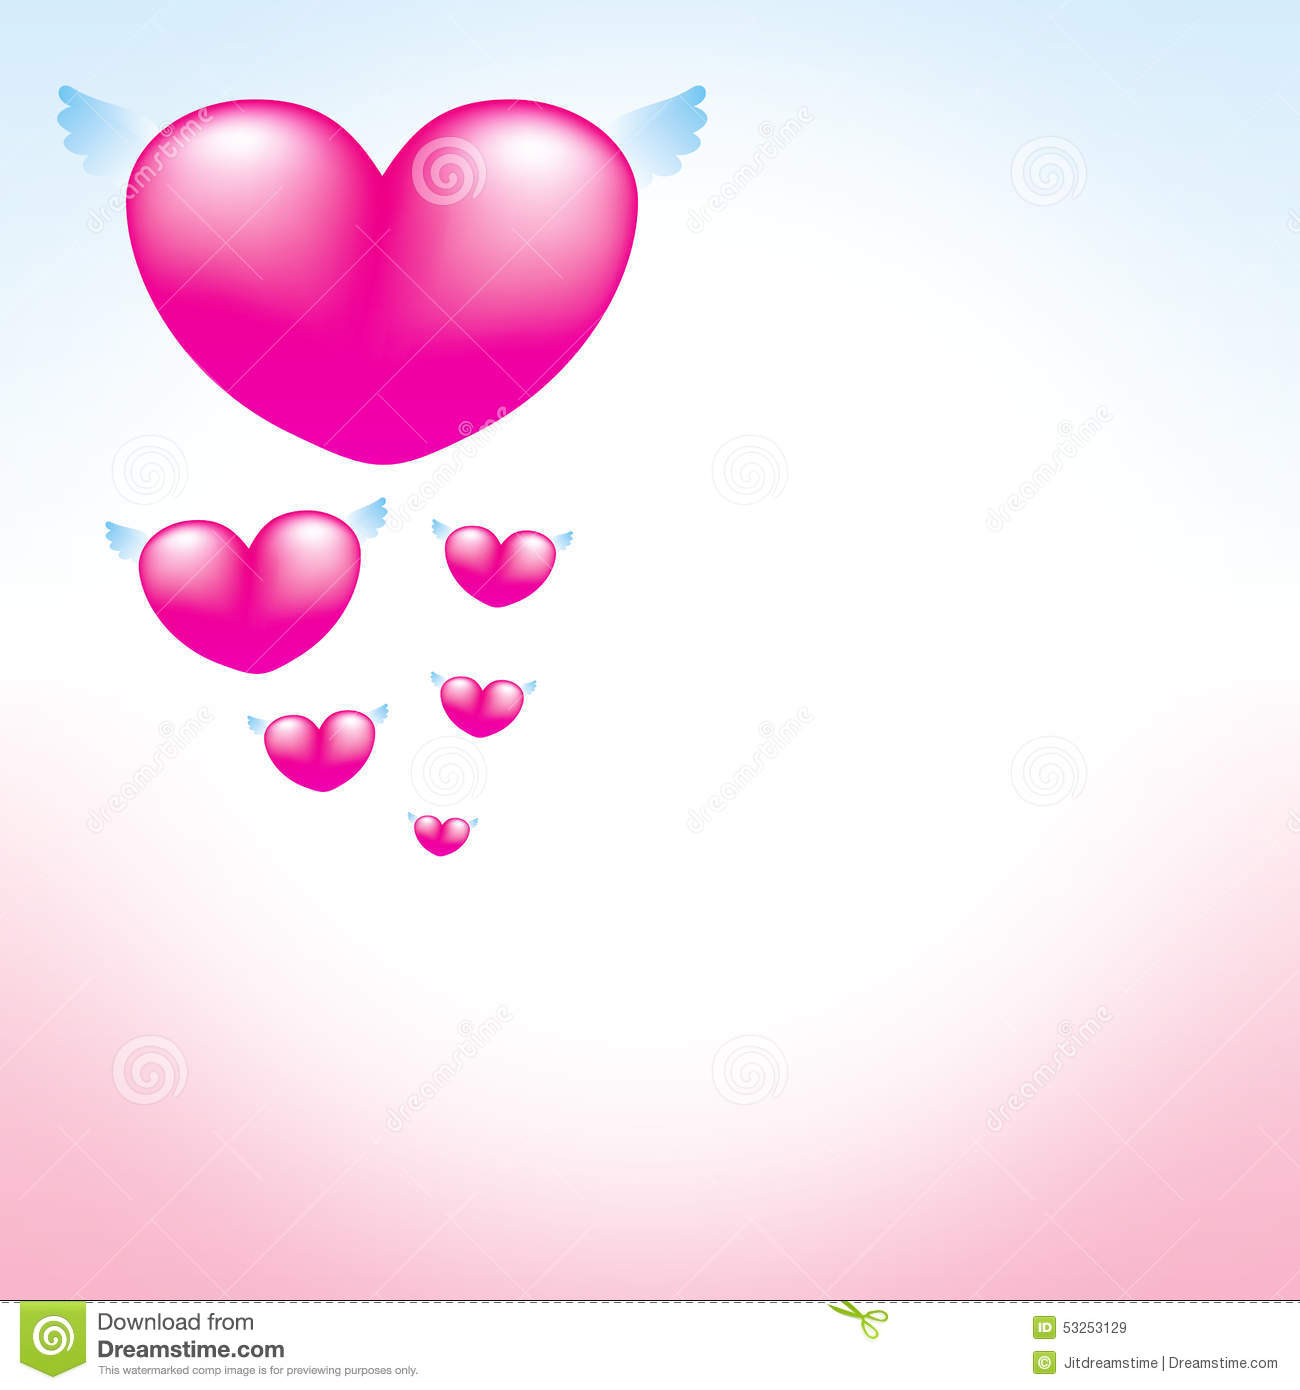 Parents Love Desktop Wallpaper : Love Heart Pink Background Stock Vector - Image: 53253129